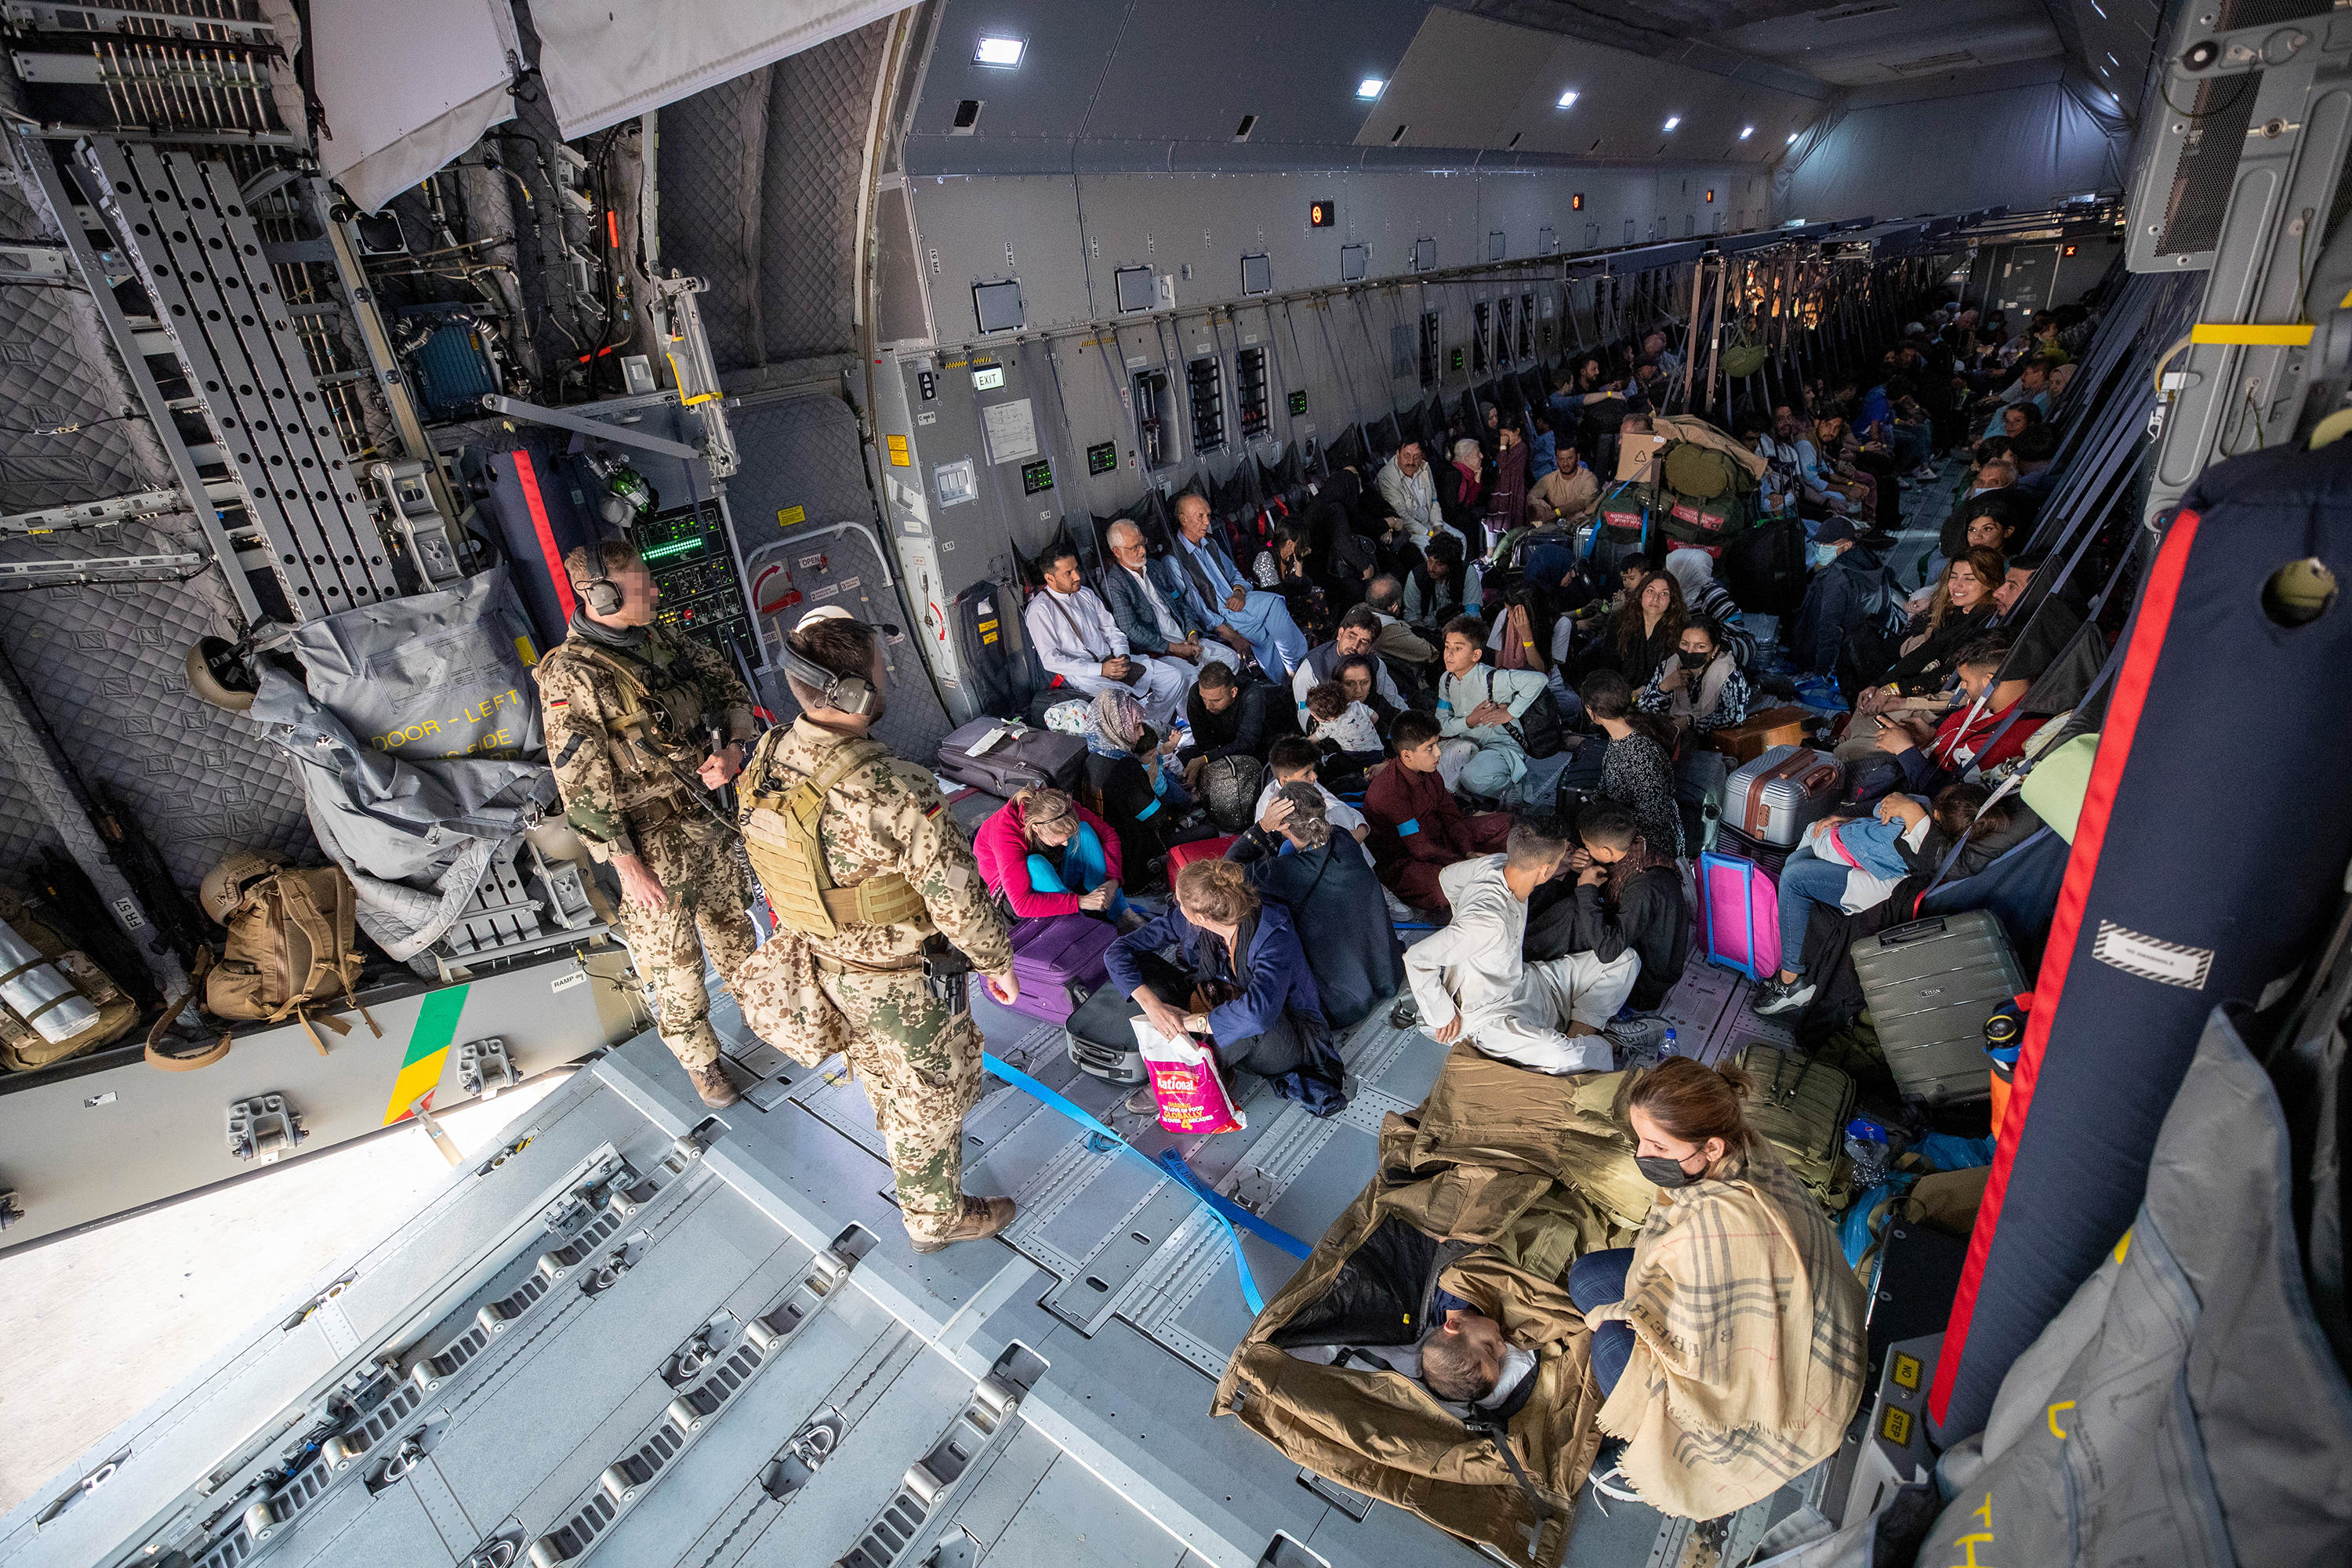 Evacuees from Kabul sit inside a military aircraft in Tashkent, Uzbekistan, on August 17, before reaching their final destination in Germany.